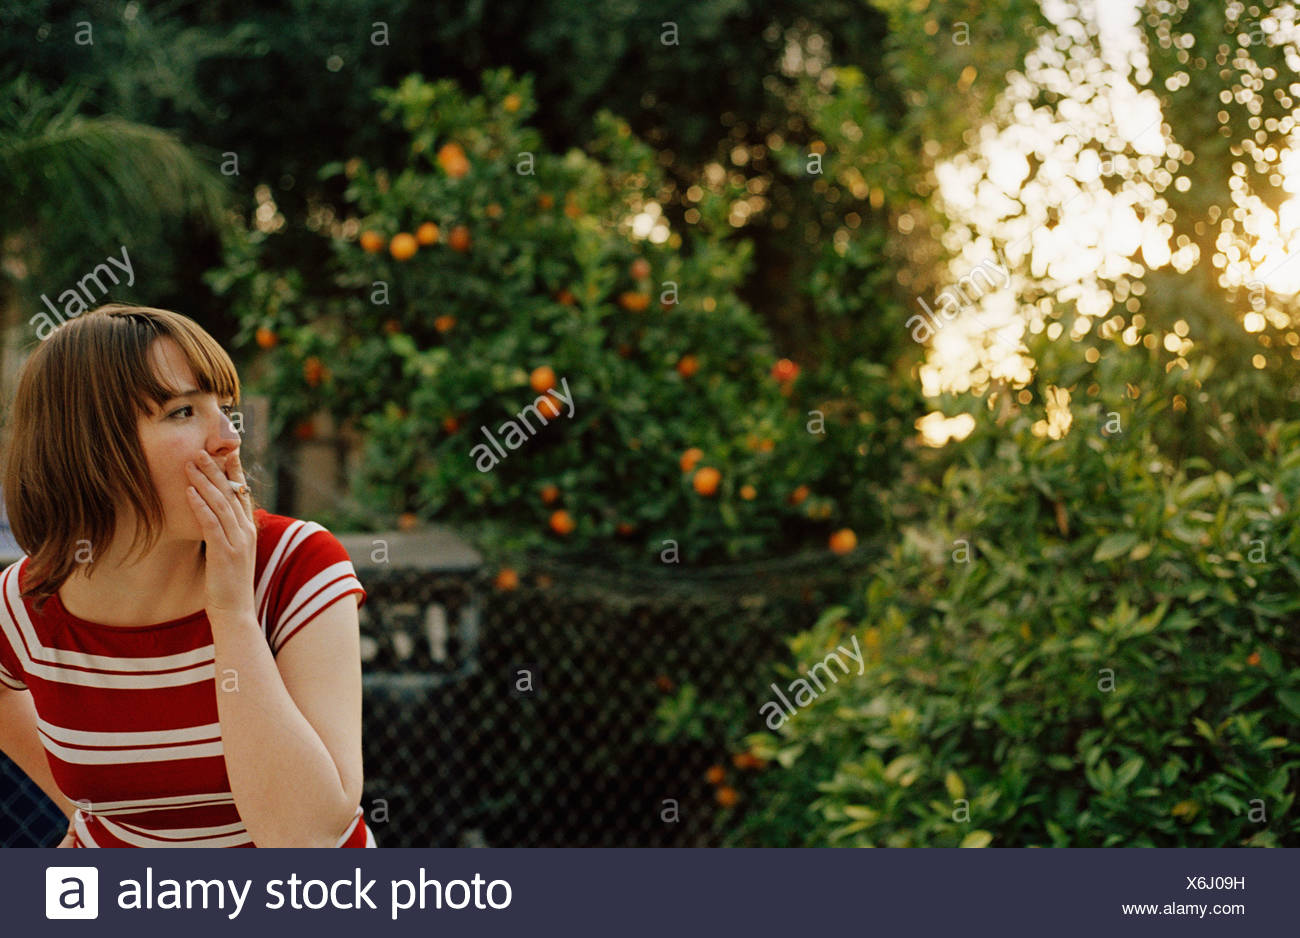 Young woman smoking a cigarette in a back yard Stock Photo